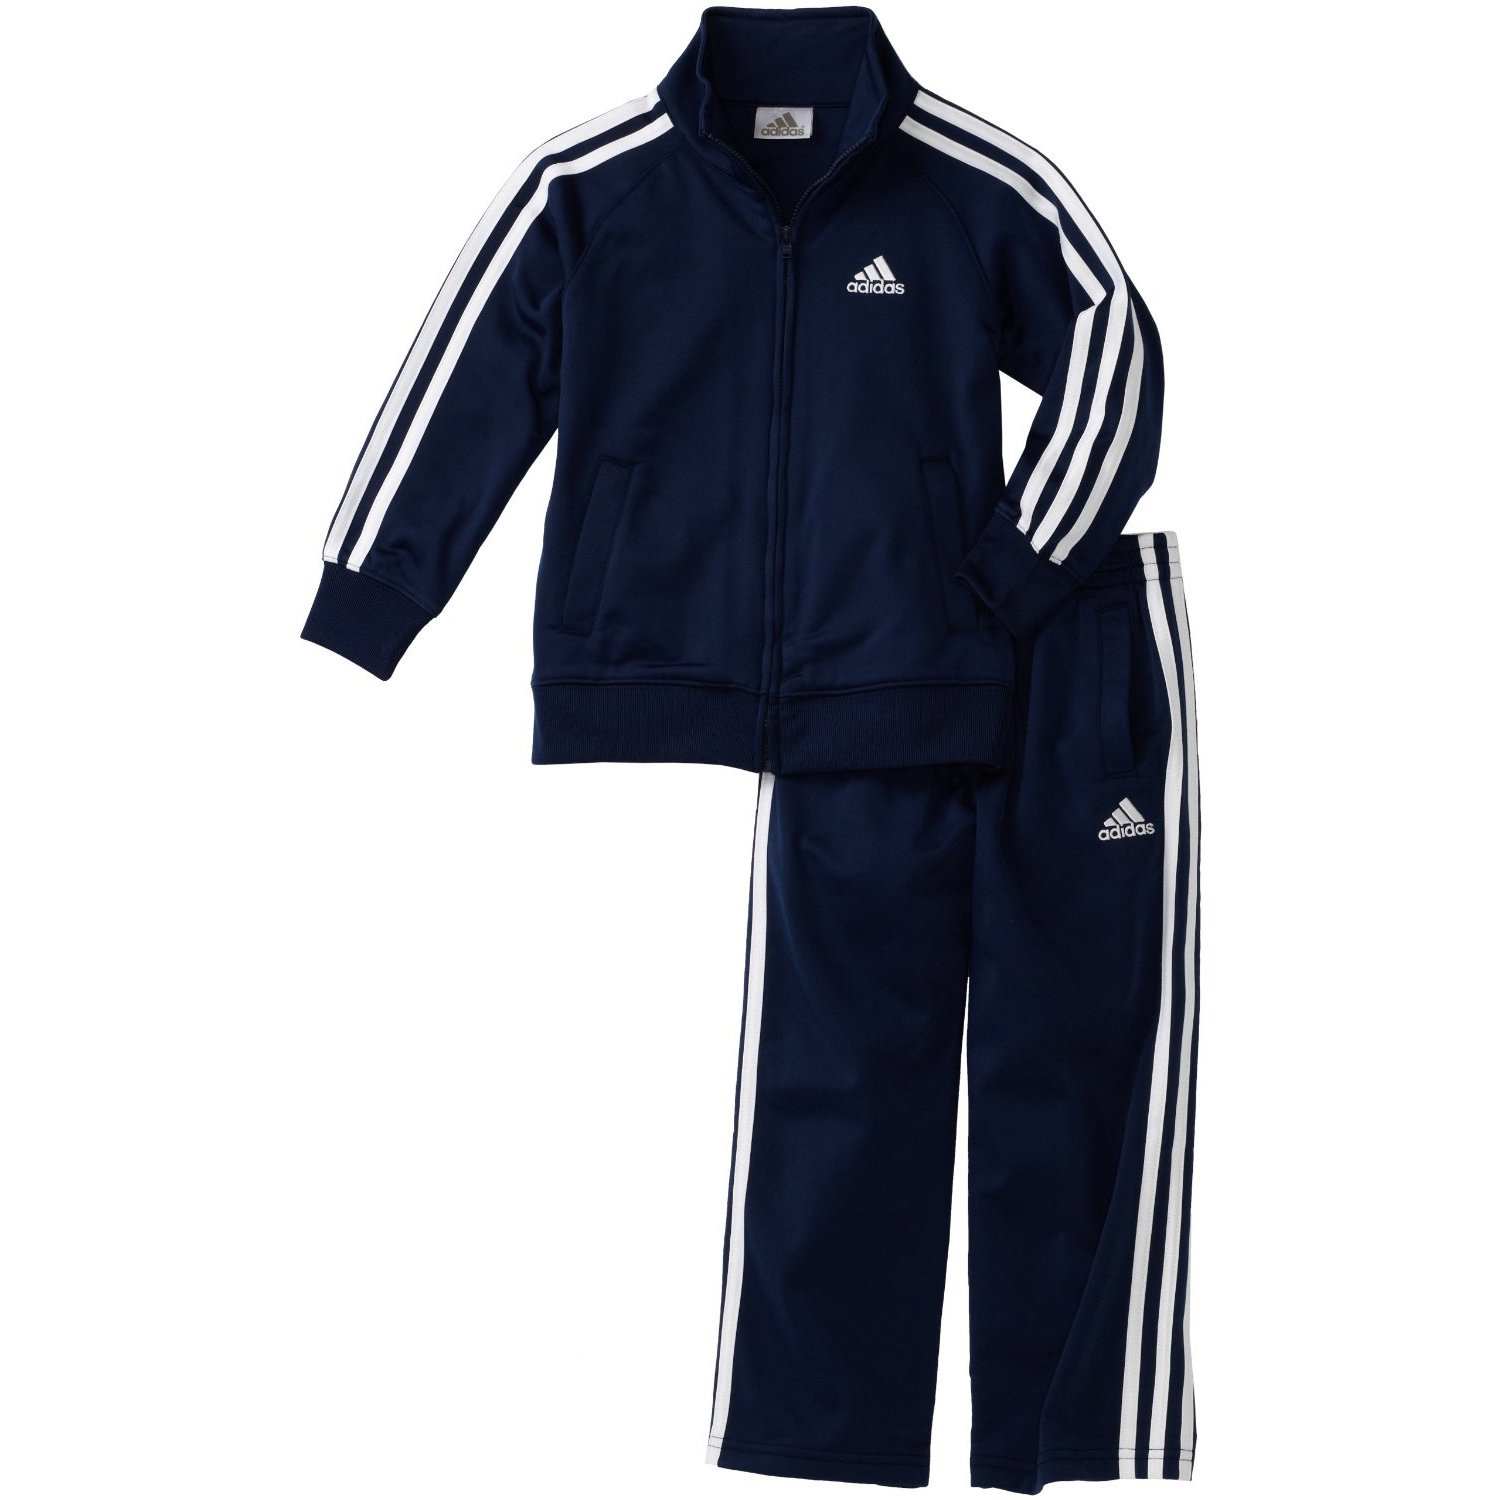 adidas Toddler Boys' Iconic Tricot Jacket and Pant Set, Navy/White, 2T by adidas